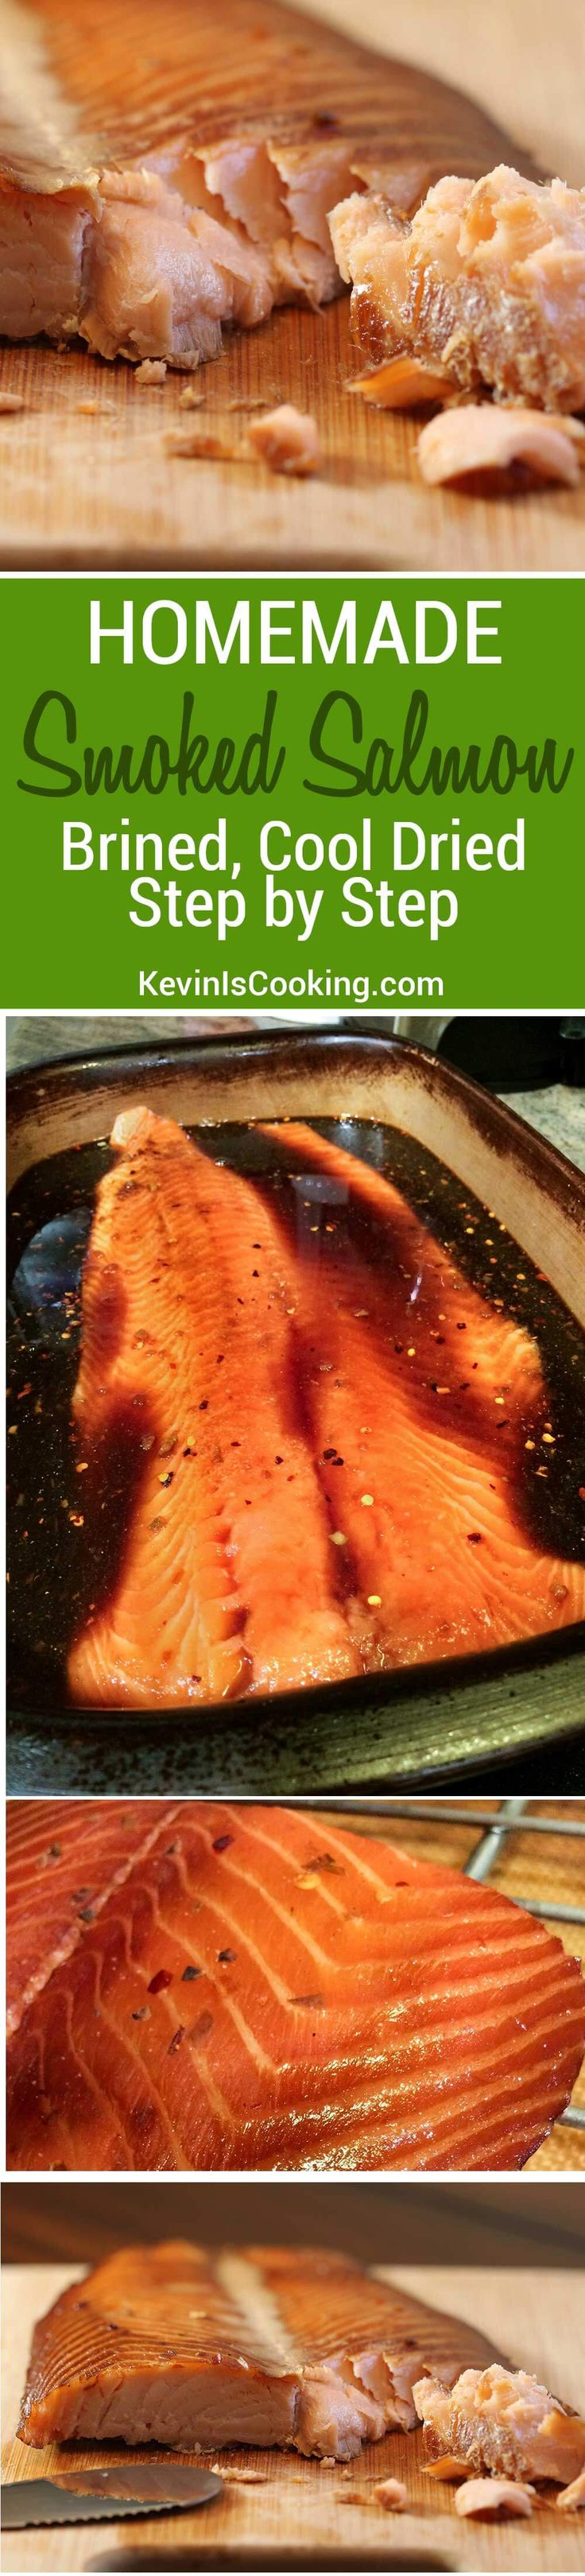 A great step by step recipe on how to make Smoked Salmon and Brine. You'll never need purchase store bought smoked salmon again!